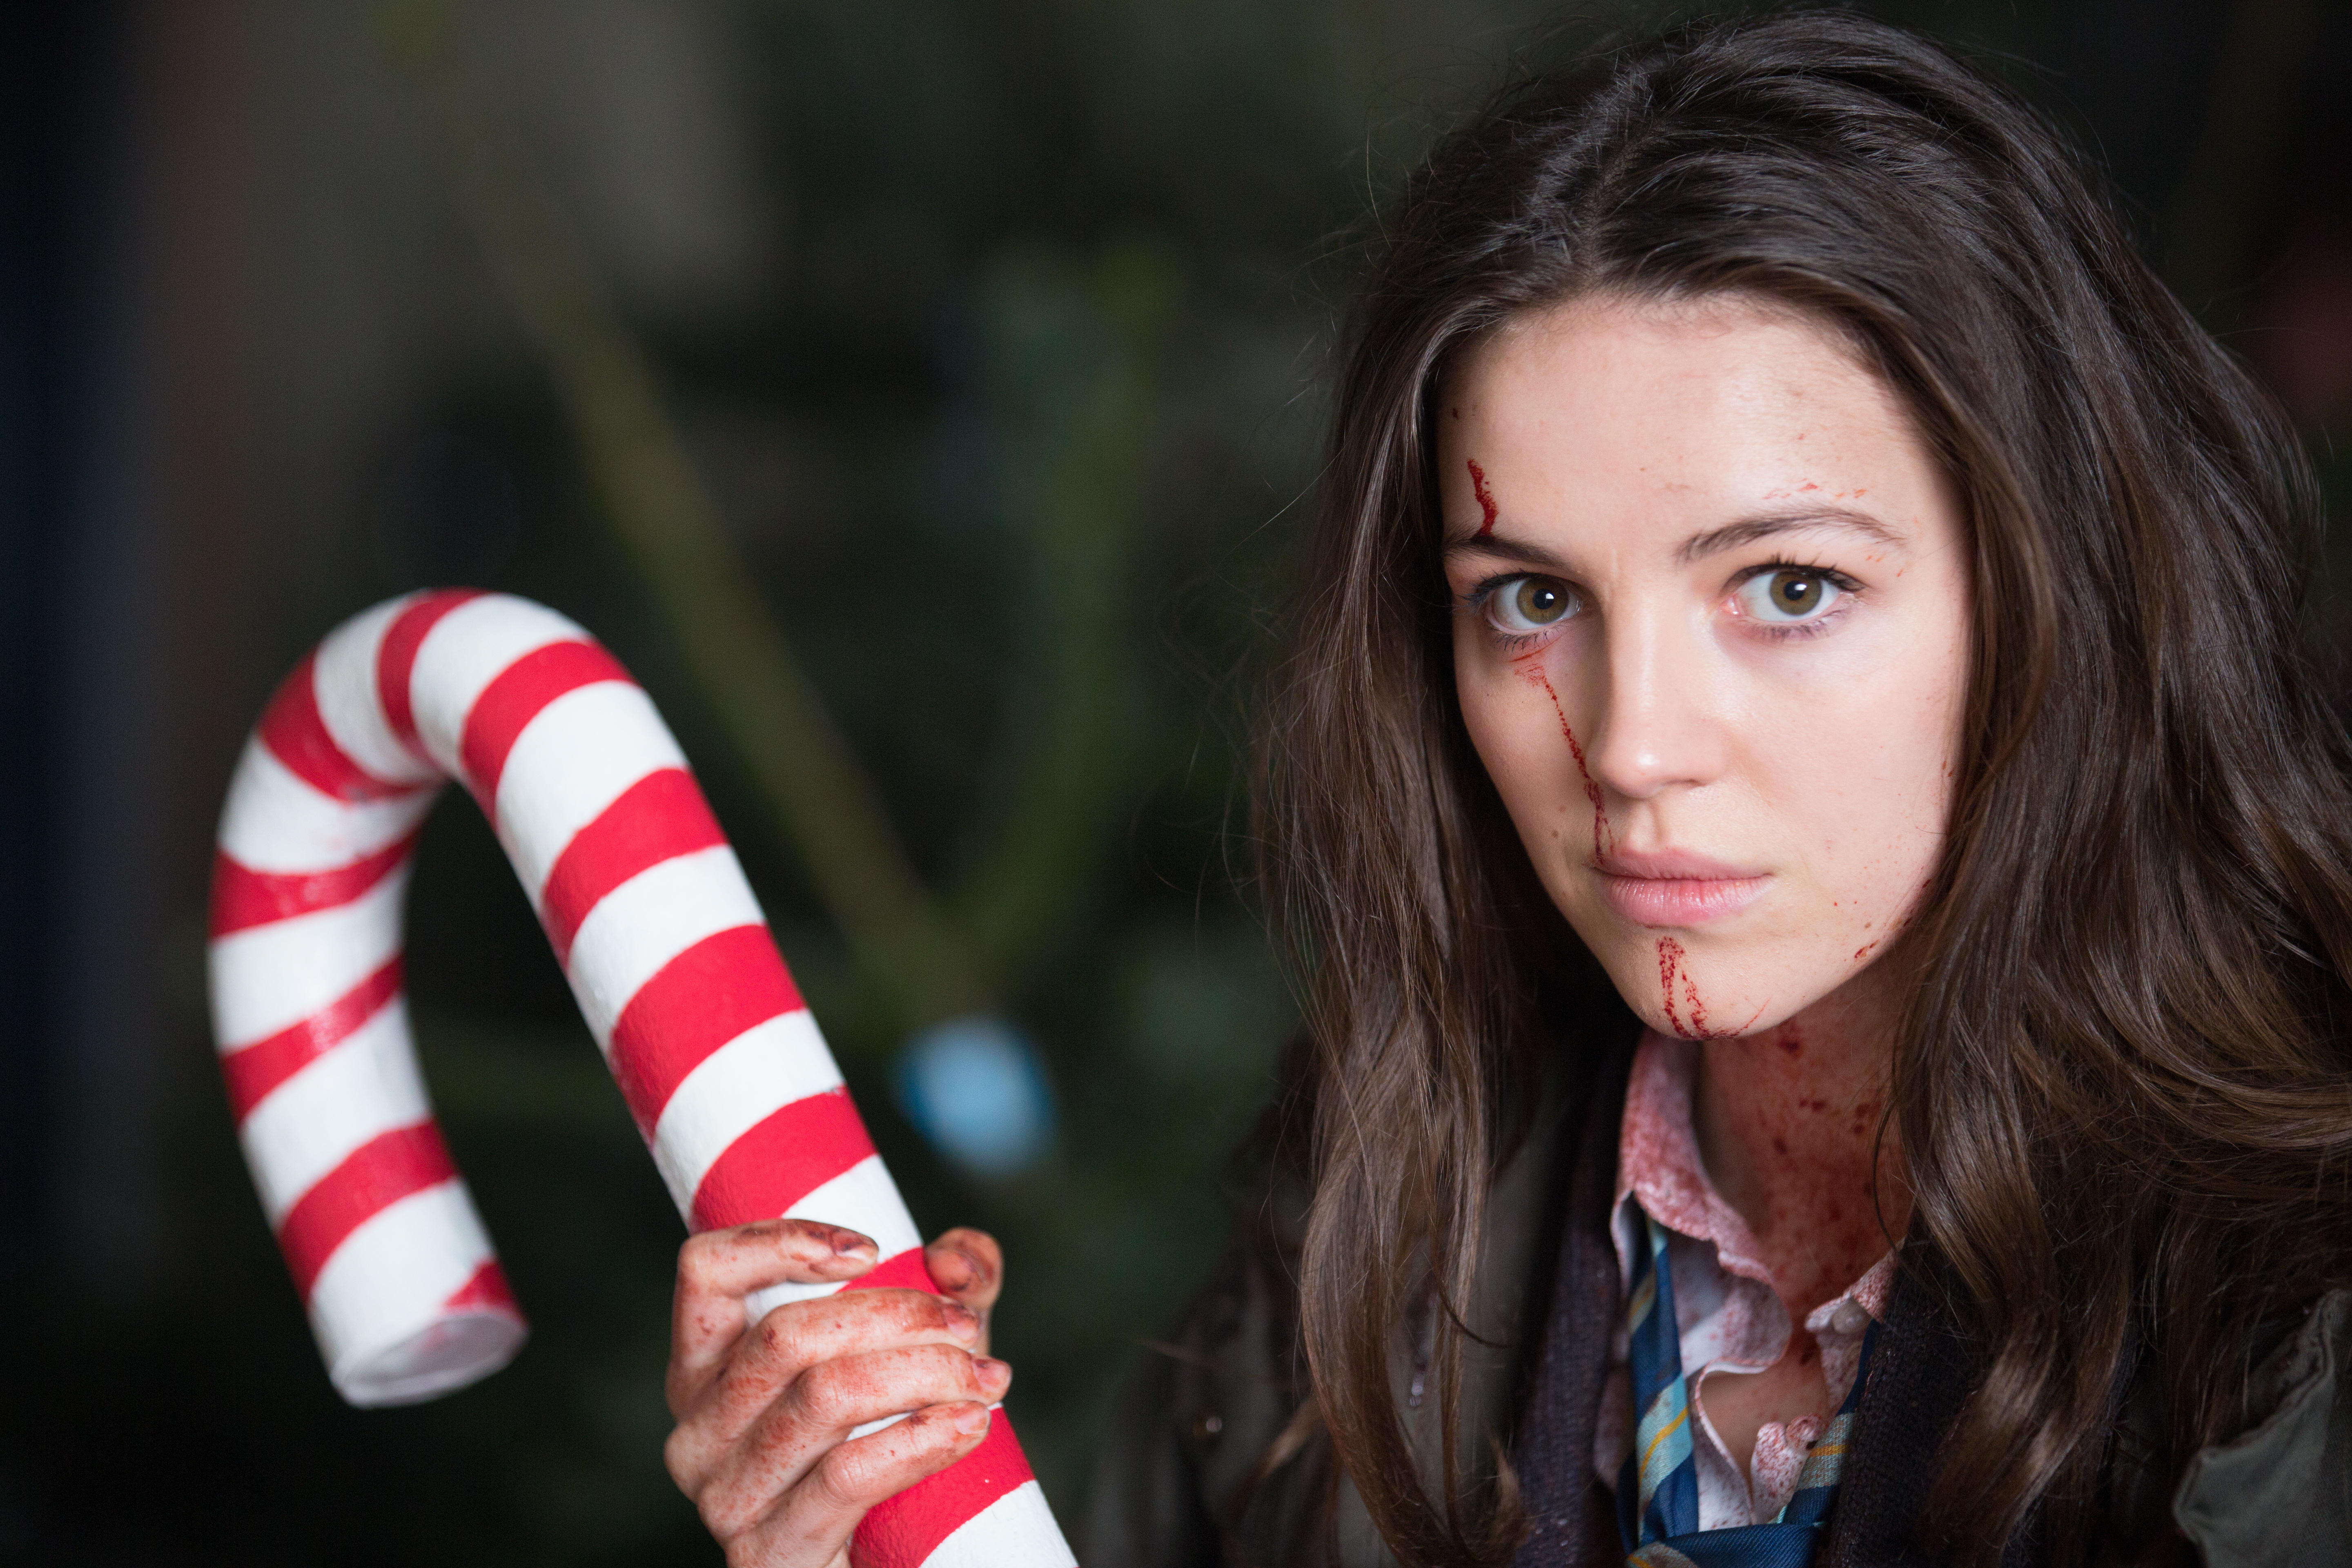 anna-apocalypse-aata-1-ella-hunt-anna-in-the-christmas-tree-emporium-with-her-candy-cane-as-a-weapon